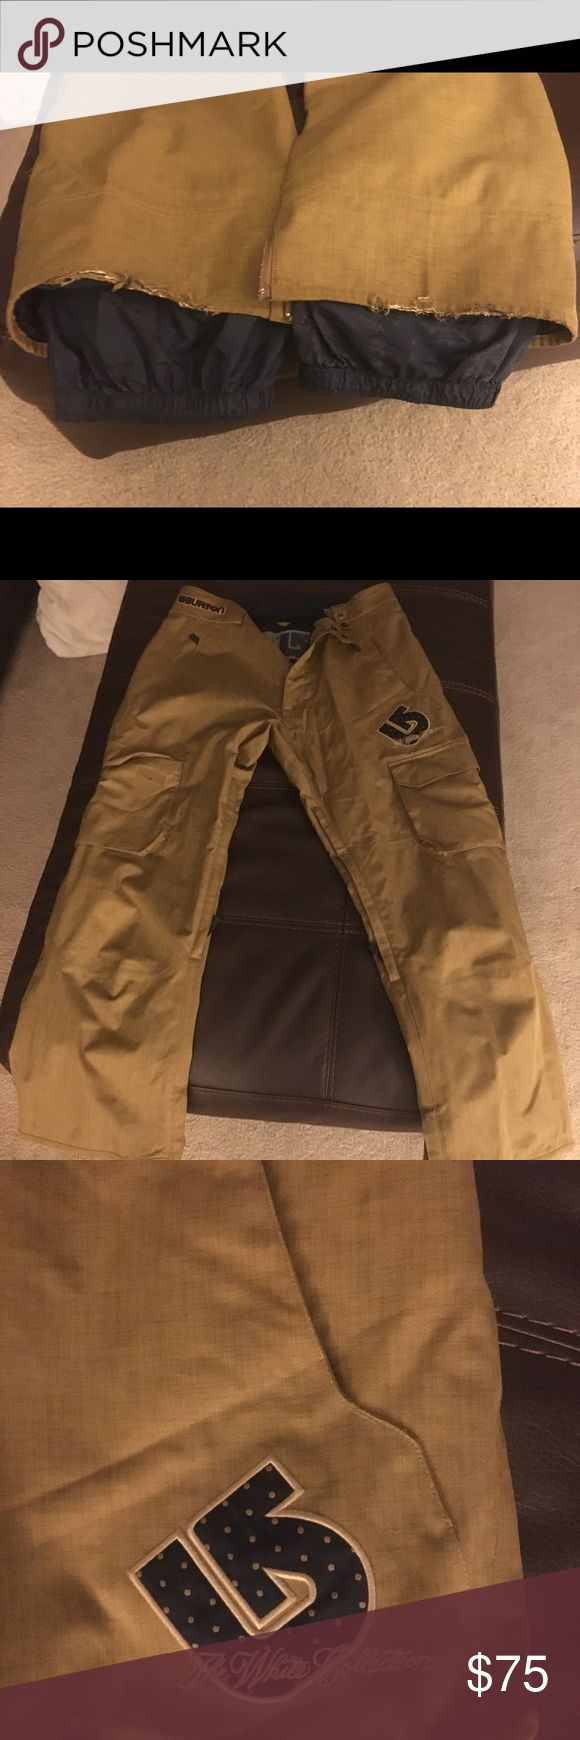 Burton Snowboard pants Sean white collection Burton snow board pants. Fraying on back of pants but otherwise great condition. Size Large. Burton Pants